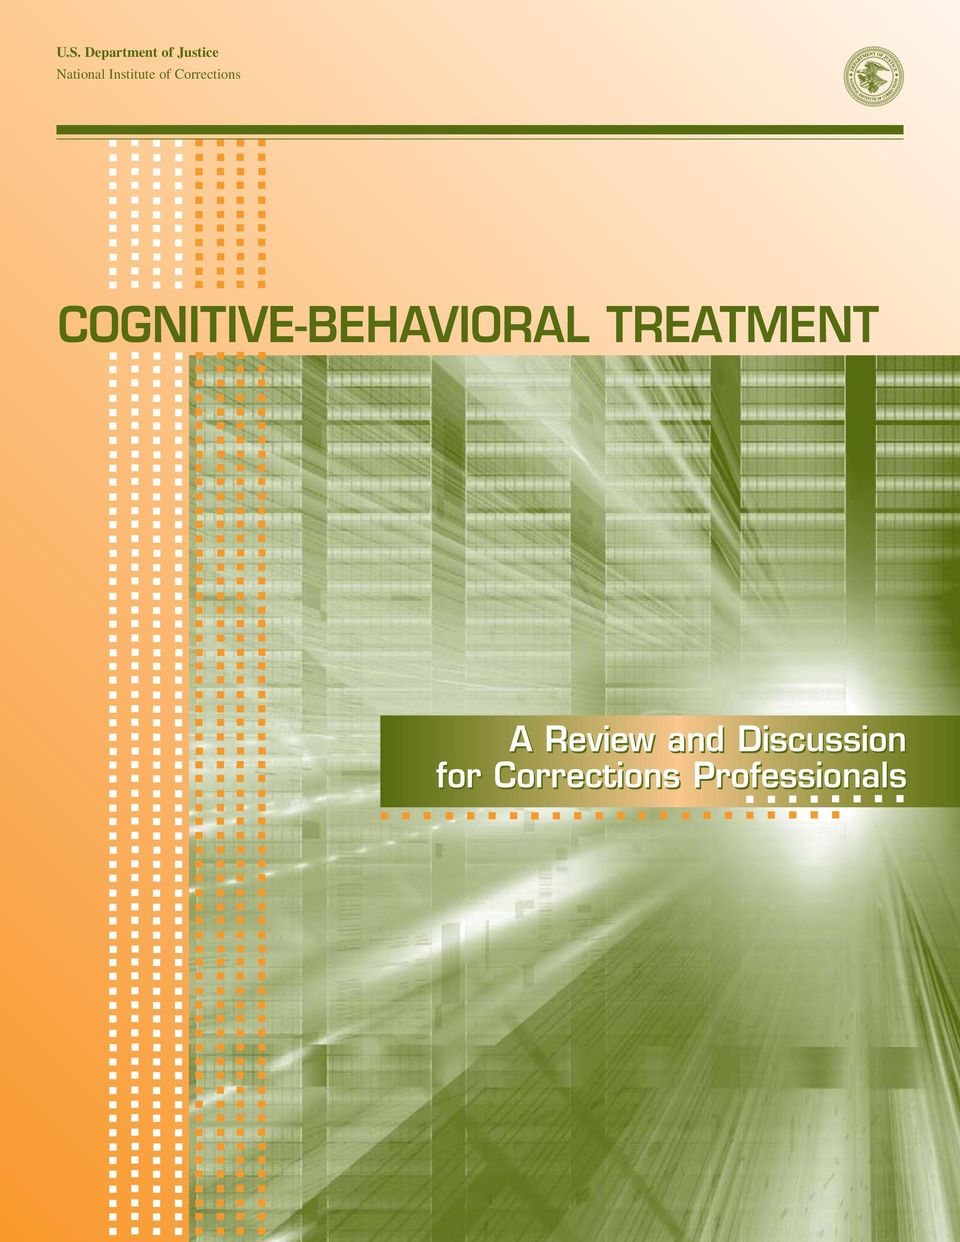 COGNITIVE-BEHAVIORAL TREATMENT A